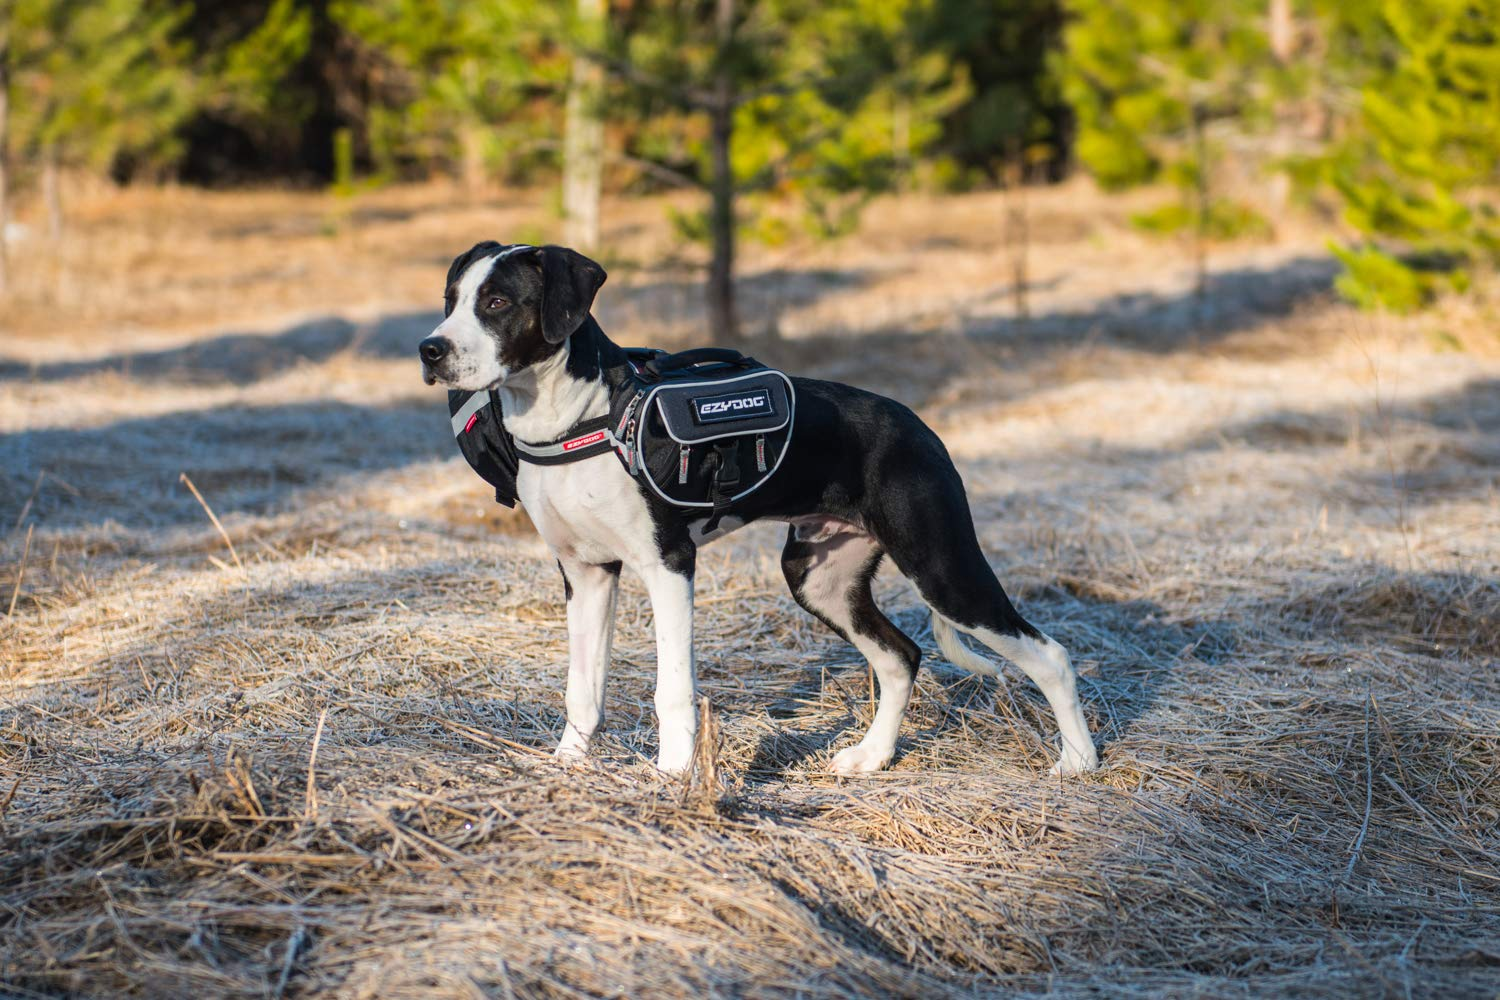 EzyDog Trail-Ready Saddle Bags for The Convert Dog Harness(Not Included)- Two Dog Backpacks with a Quick and Easy Attachment System - Superior Storage Capacity and Innovative Design (Large)